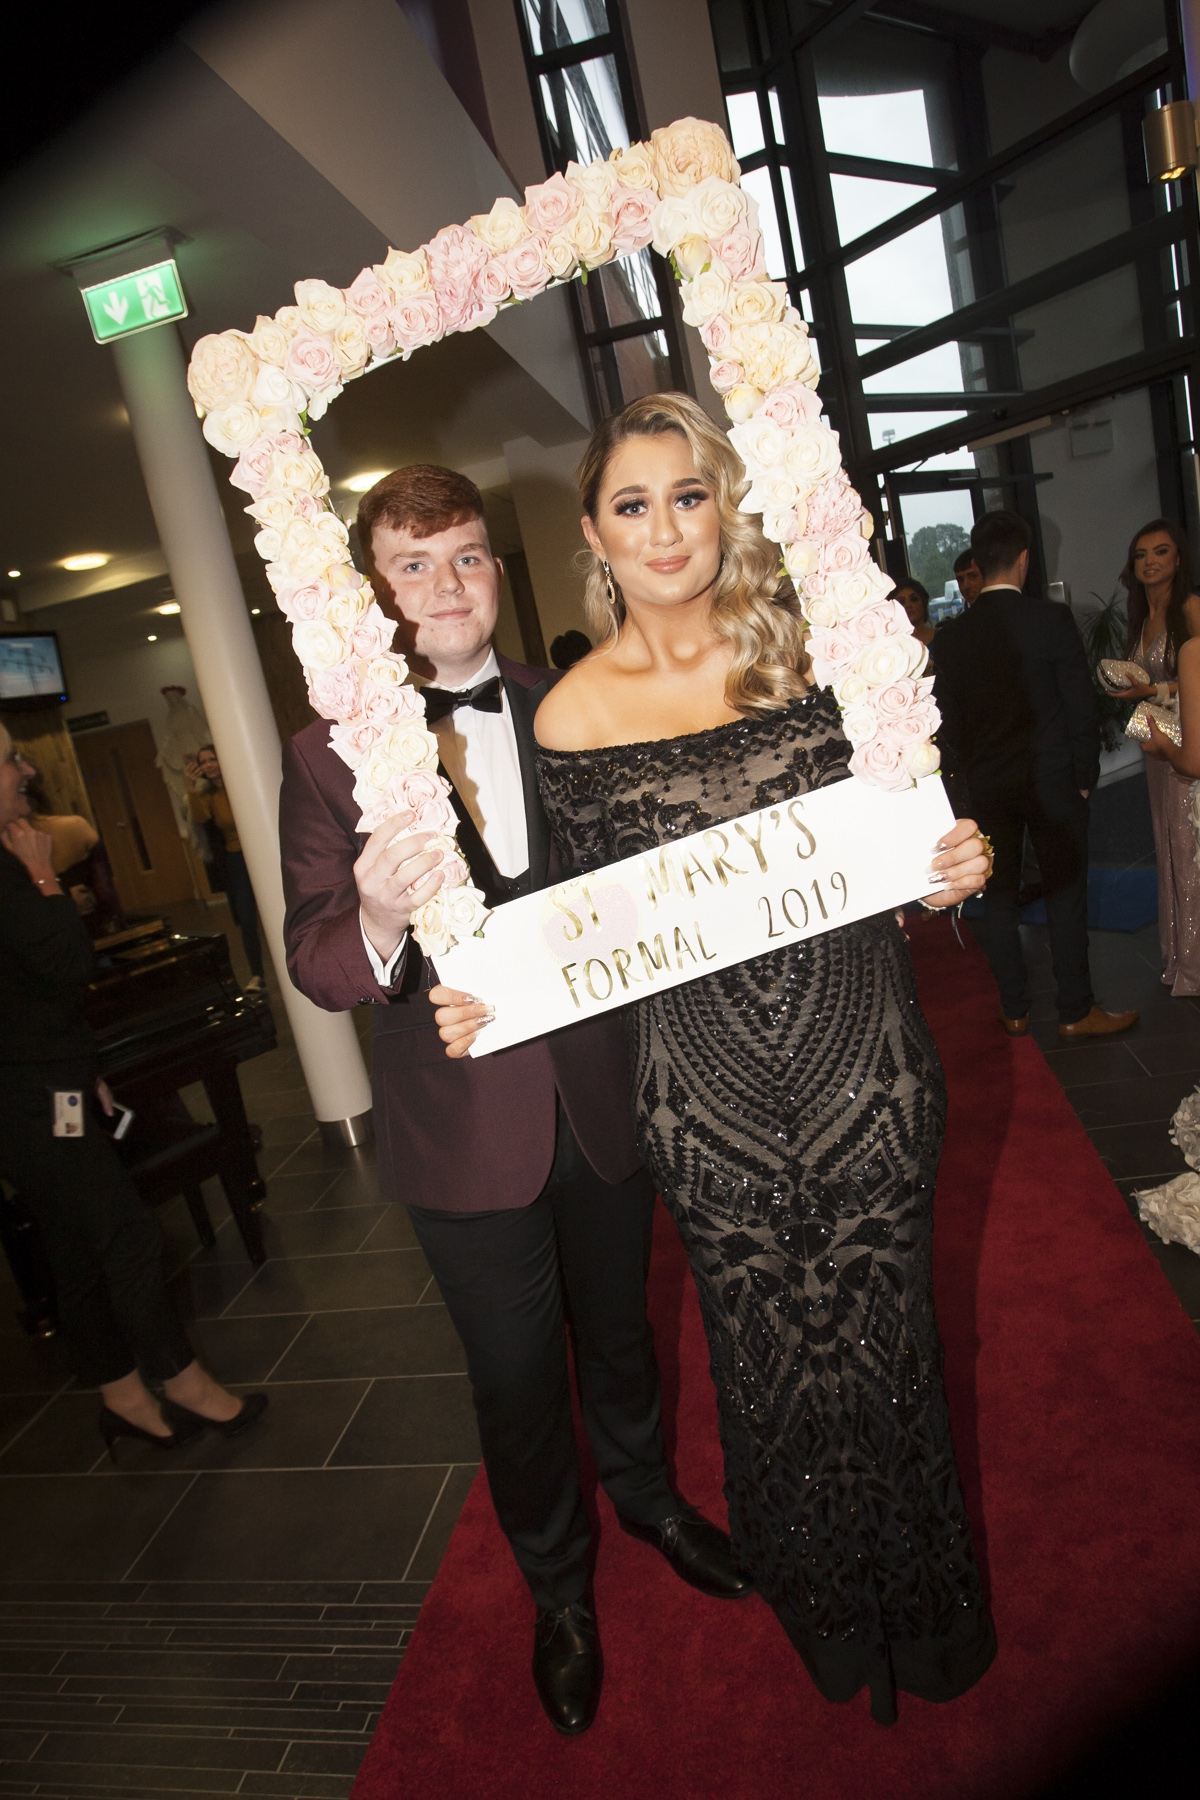 Molly Hamilton with Ben Moran pictured at the St. Mary's College Annual Formal on Thursday night last.